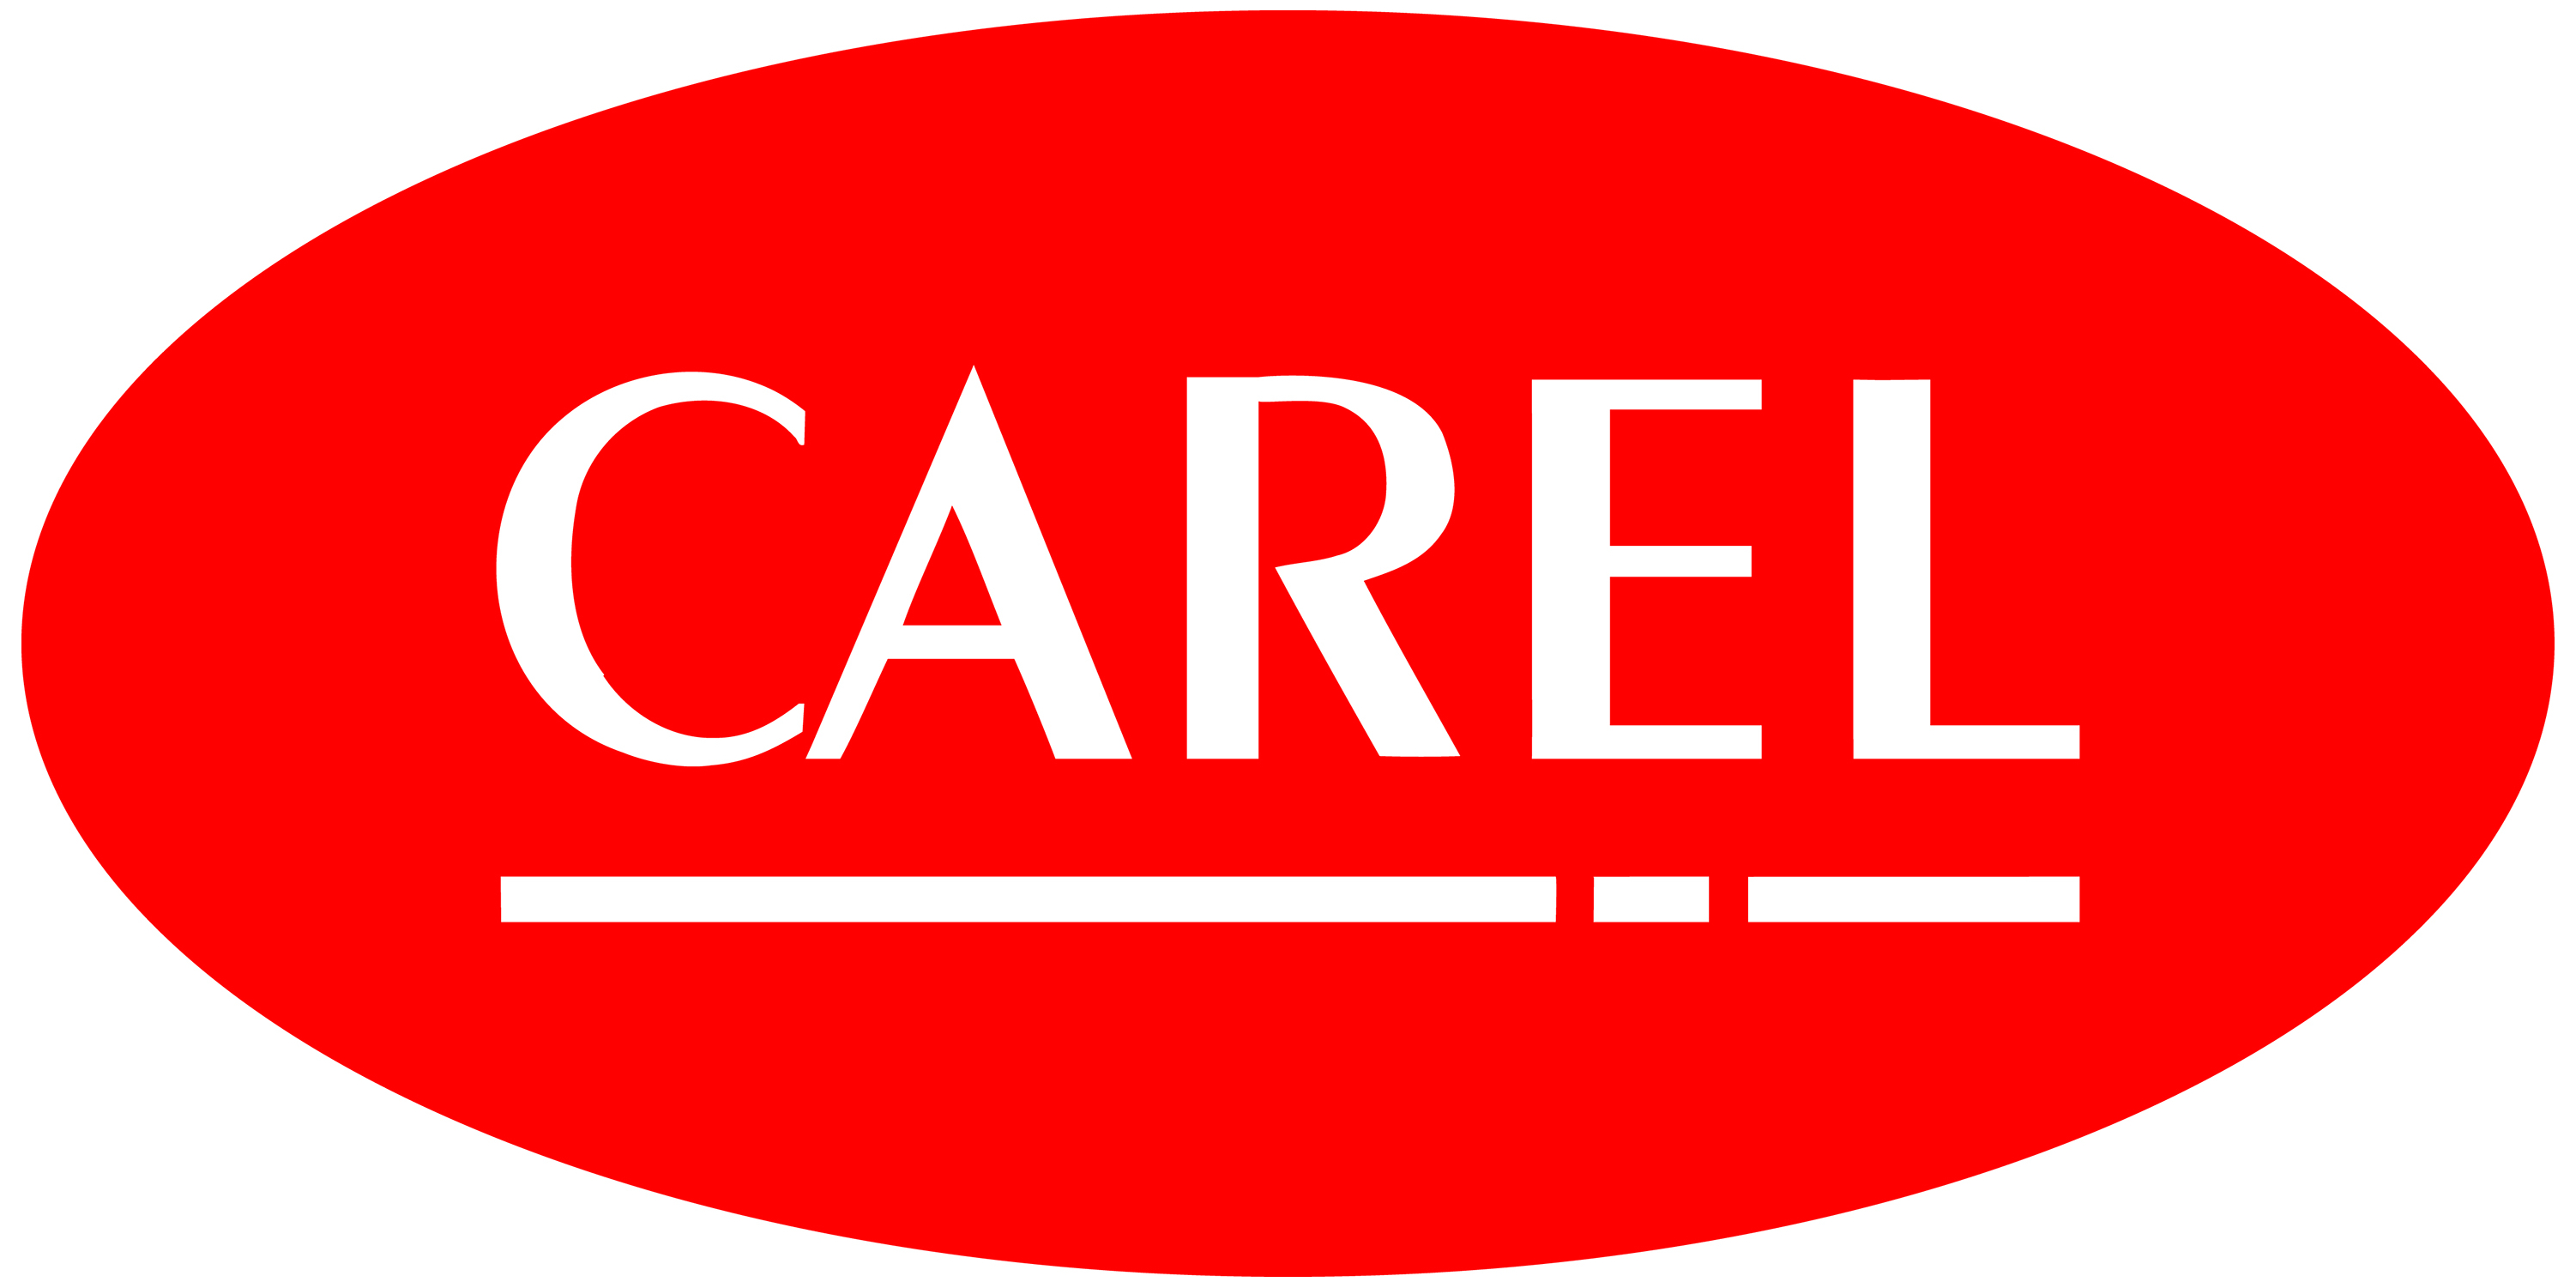 CAREL - CAREL Korea